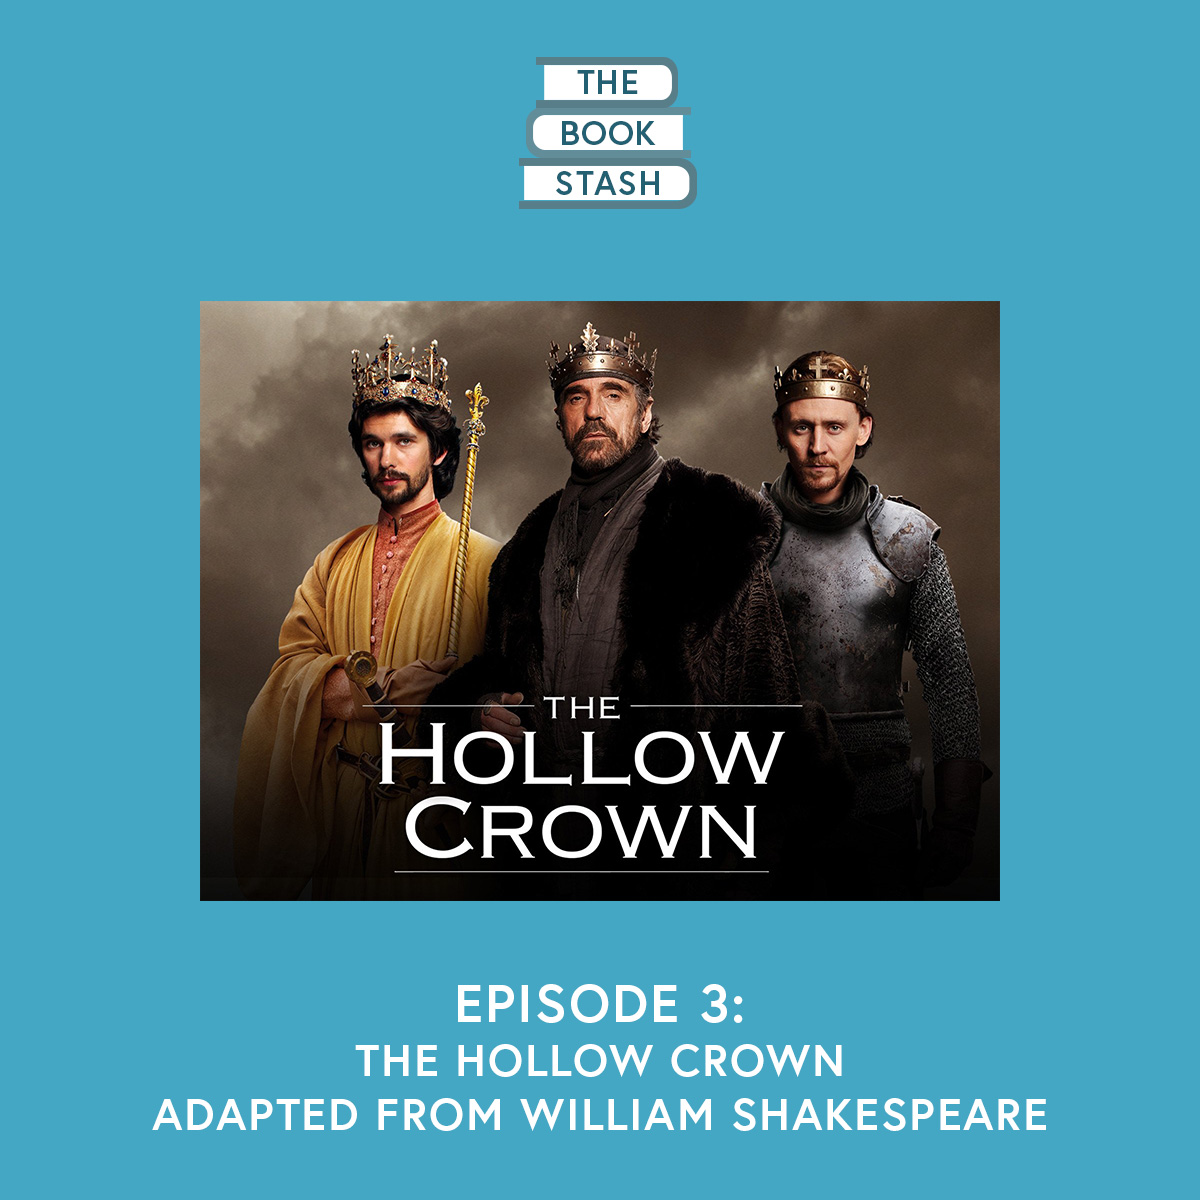 Ash Oldfield: The Book Stash - Episode 3: The Hollow Crown